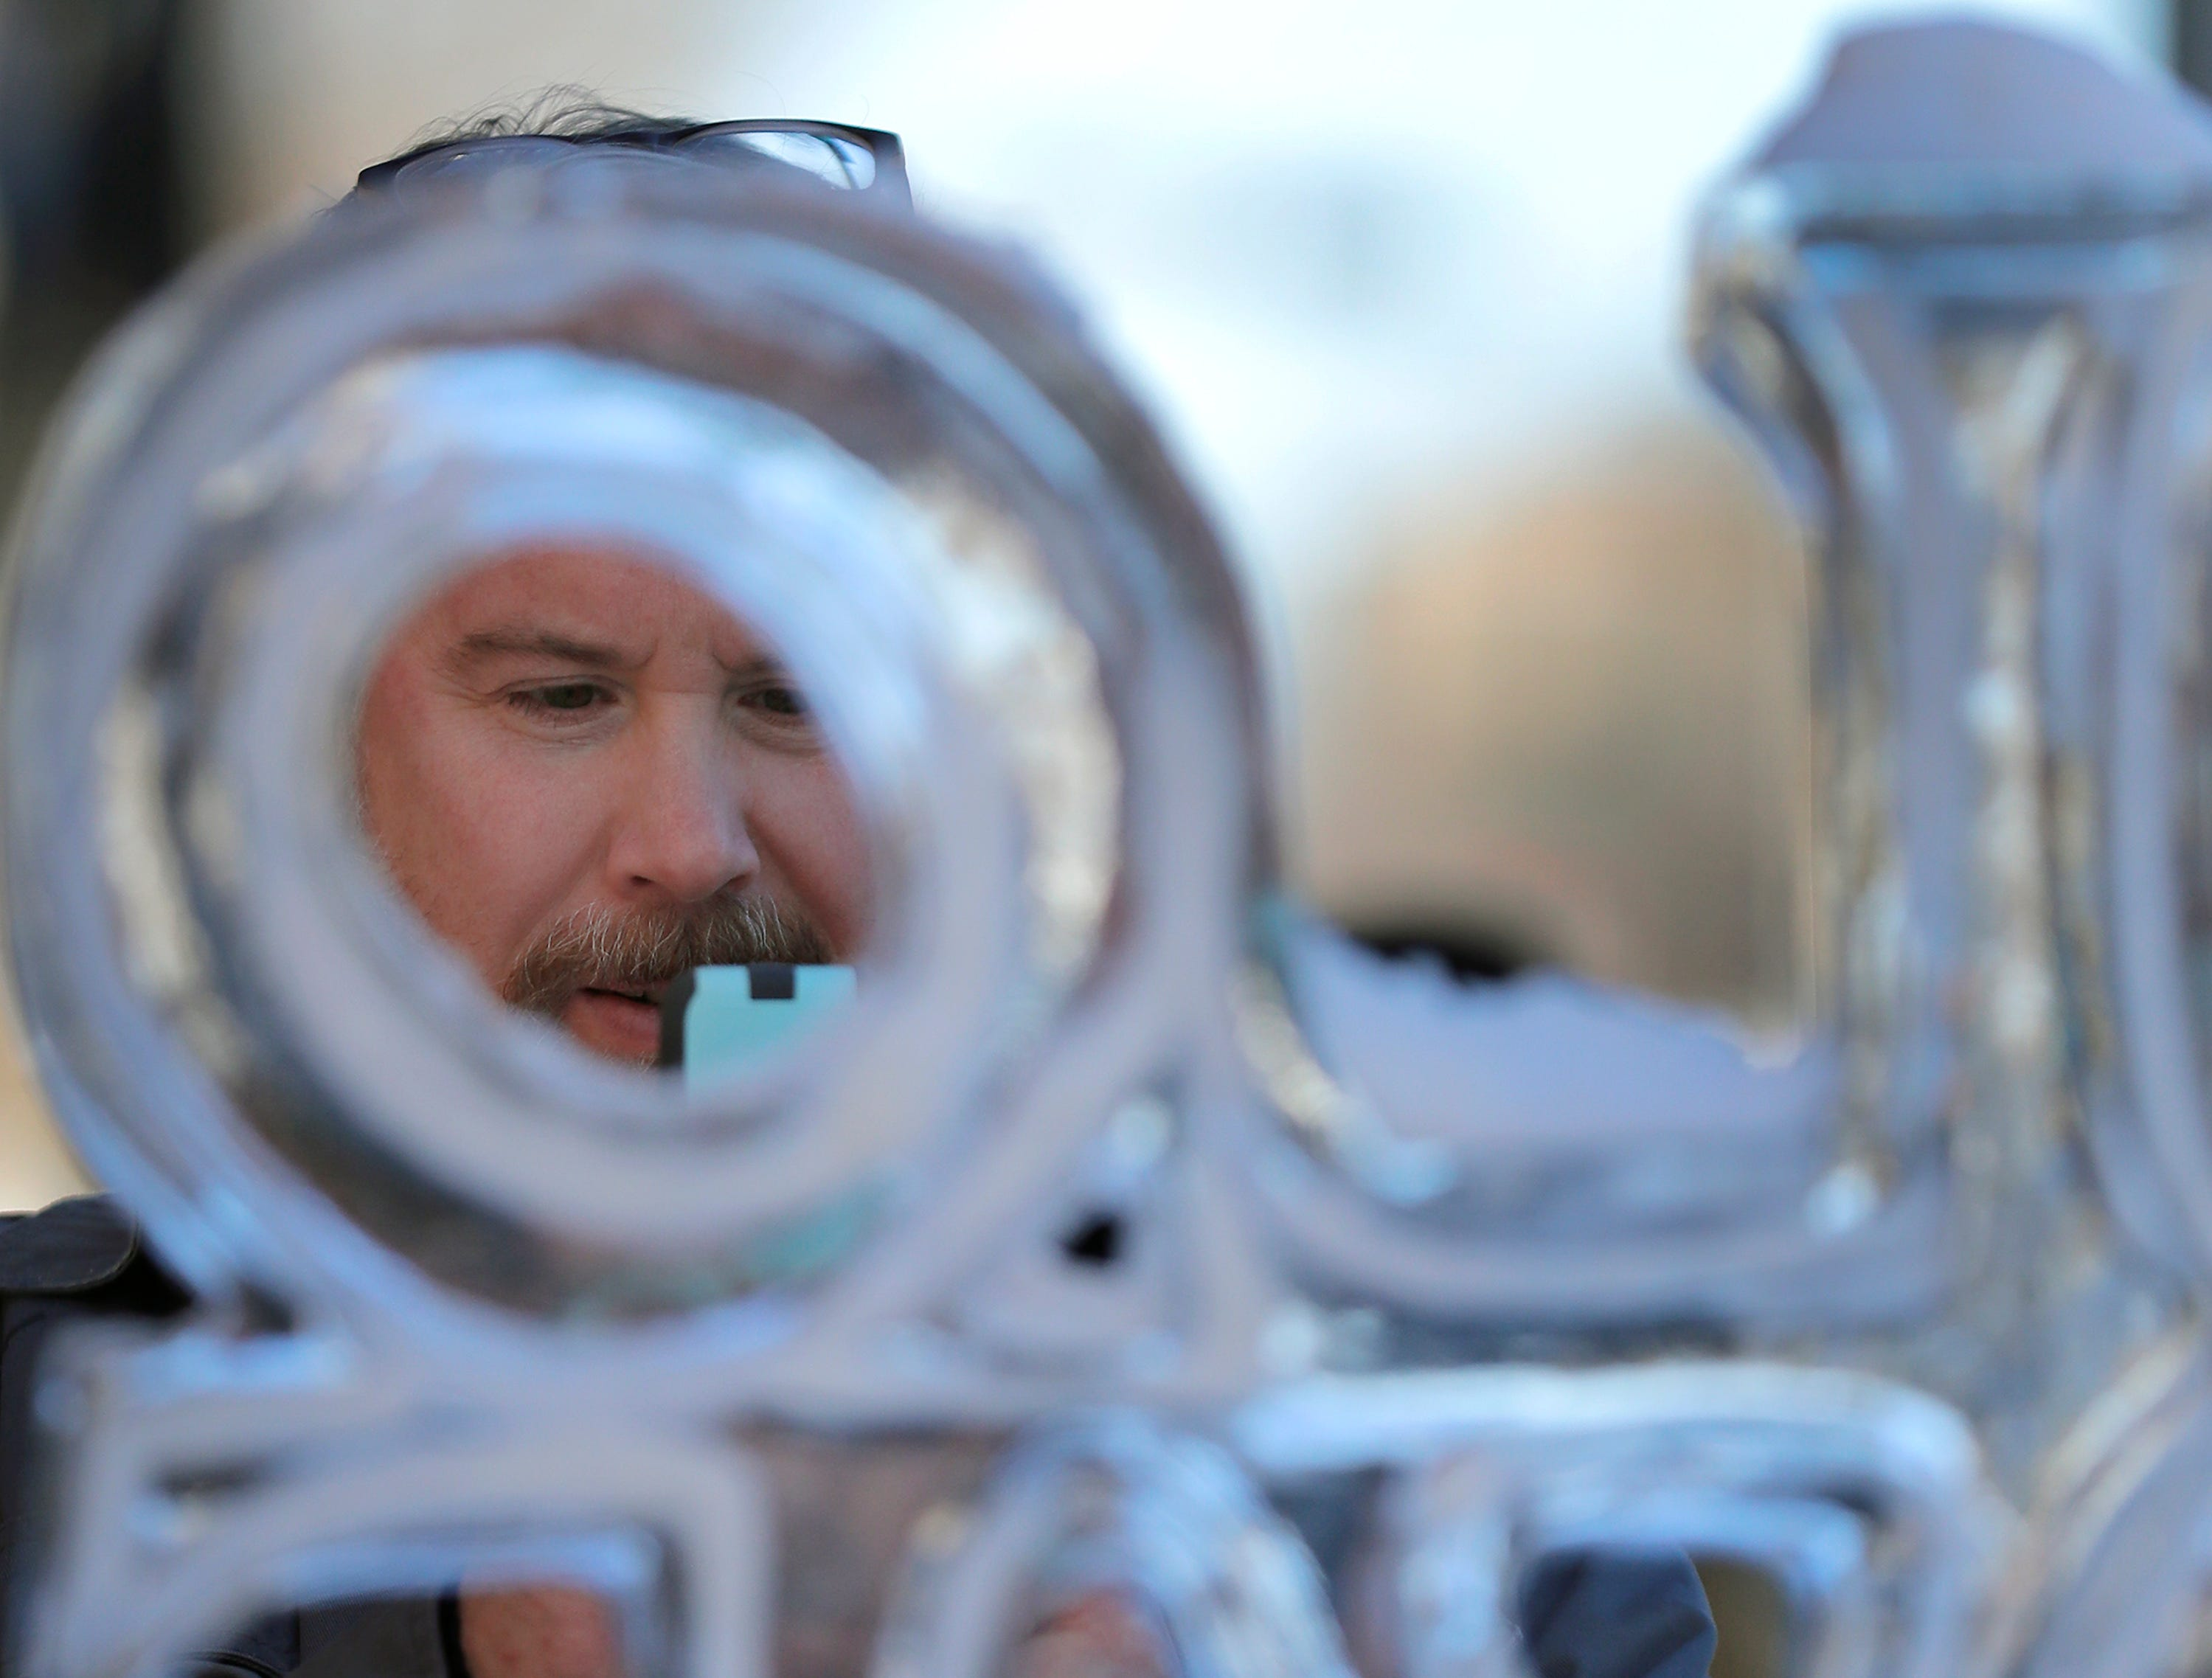 Will Keizer takes a picture of an ice sculpture on College Ave. on Wednesday, February 13, 2019, in Appleton, Wis. before he is transferred to prison. Wm. Glasheen/USA TODAY NETWORK-Wisconsin.